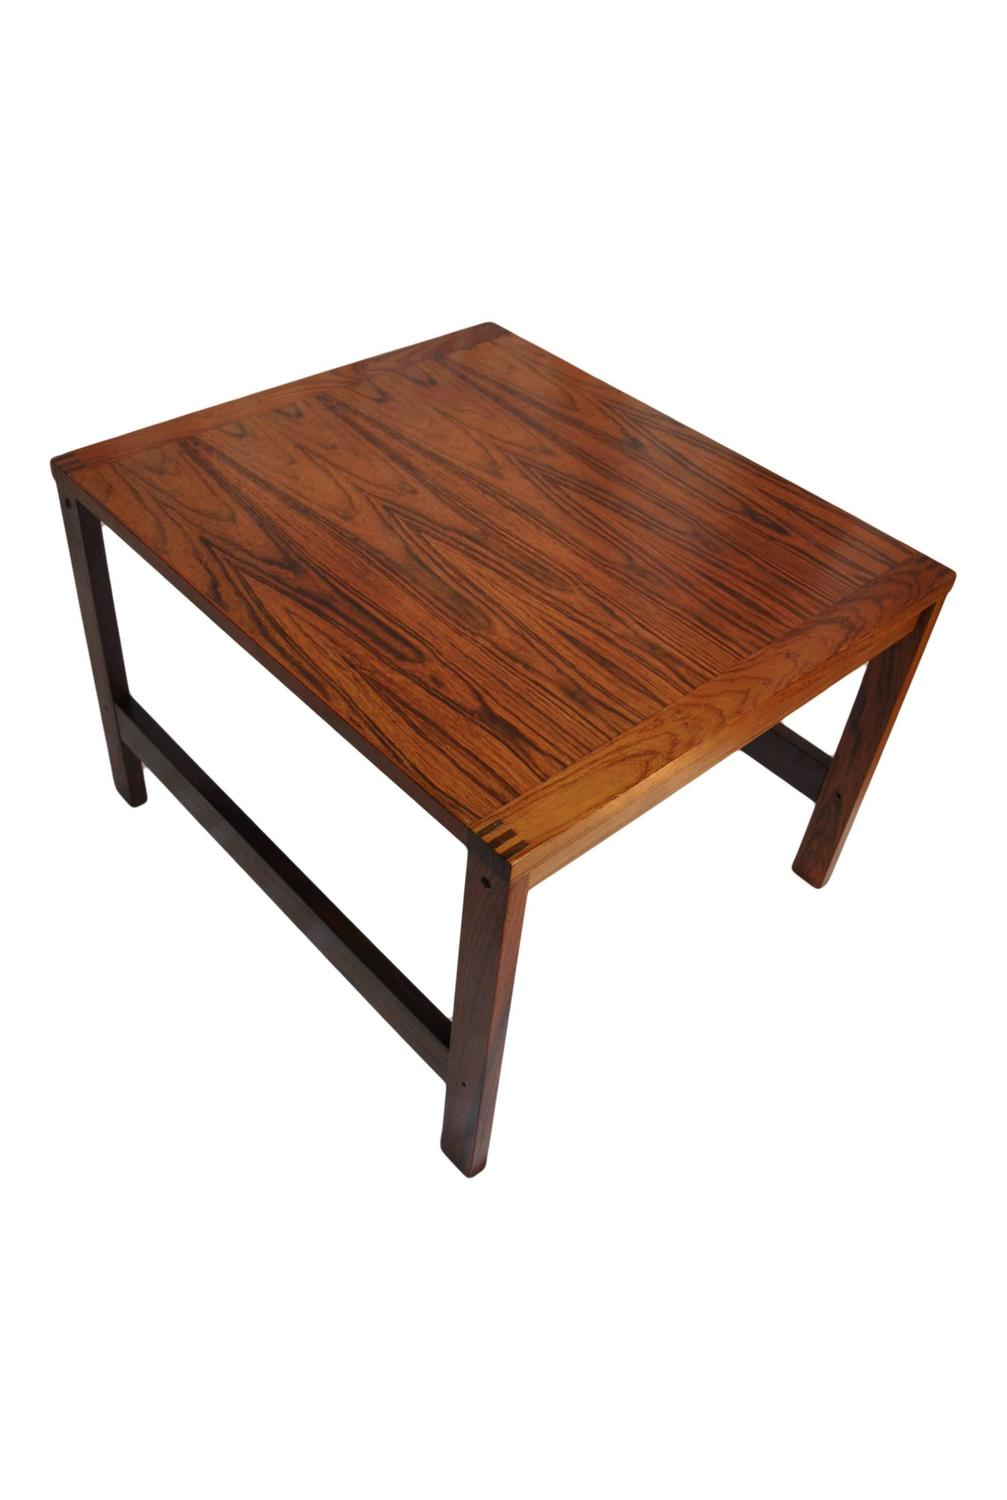 Ole Gjerlov Knudsen Rosewood Coffee Table At 1stdibs